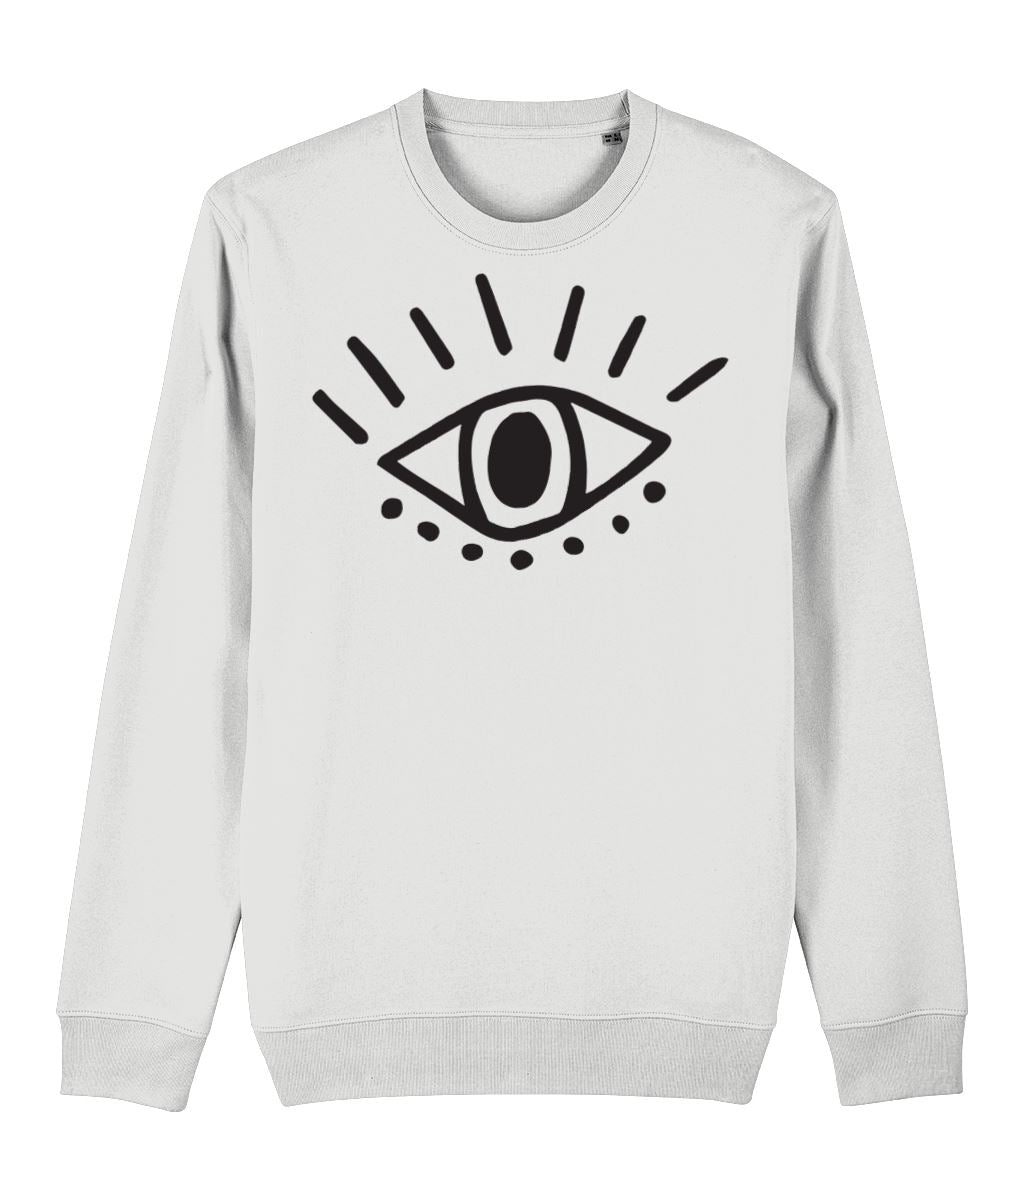 Esoteric Eye Sweatshirt Clothing IndianBelieves White X-Small